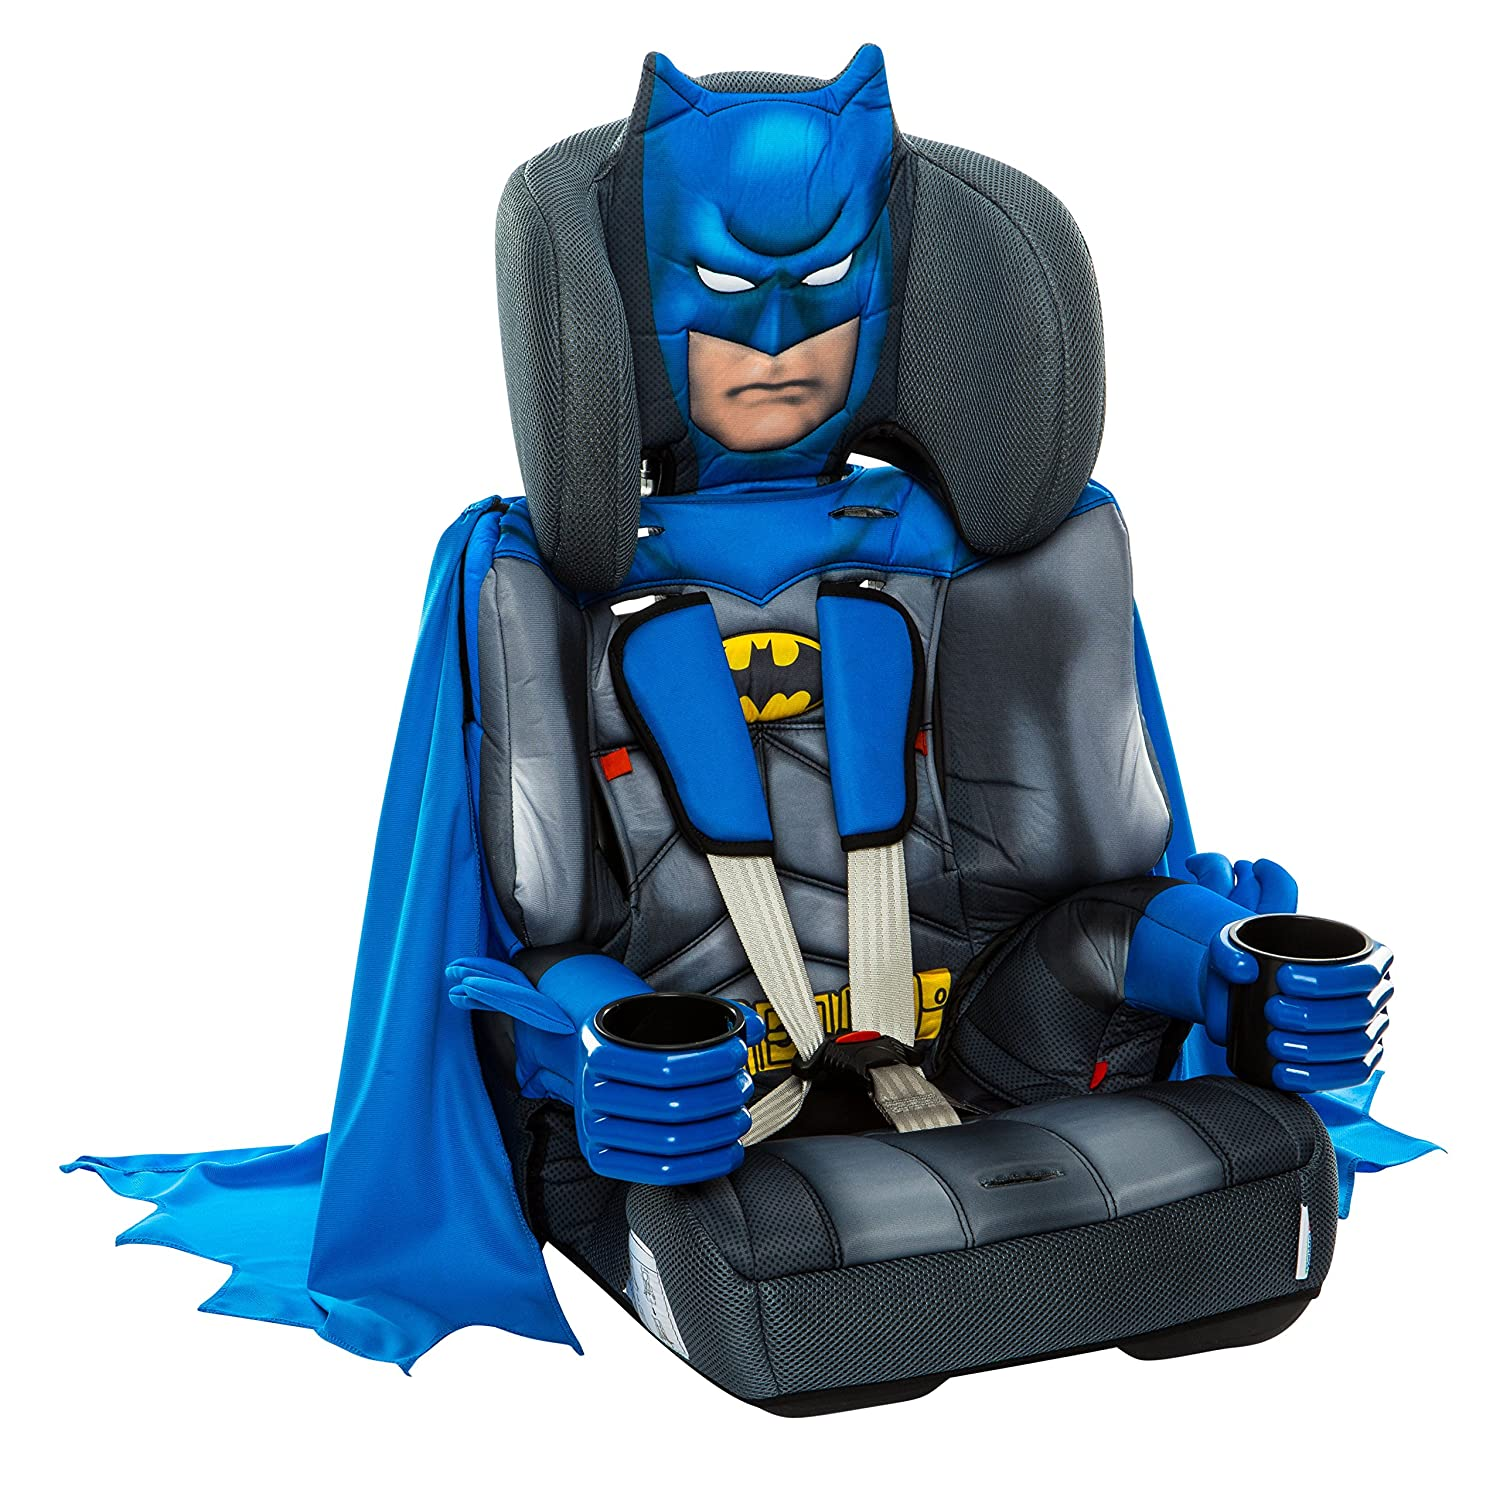 Kids Embrace Group 123 Car Seat Batman Deluxe 14-01-020